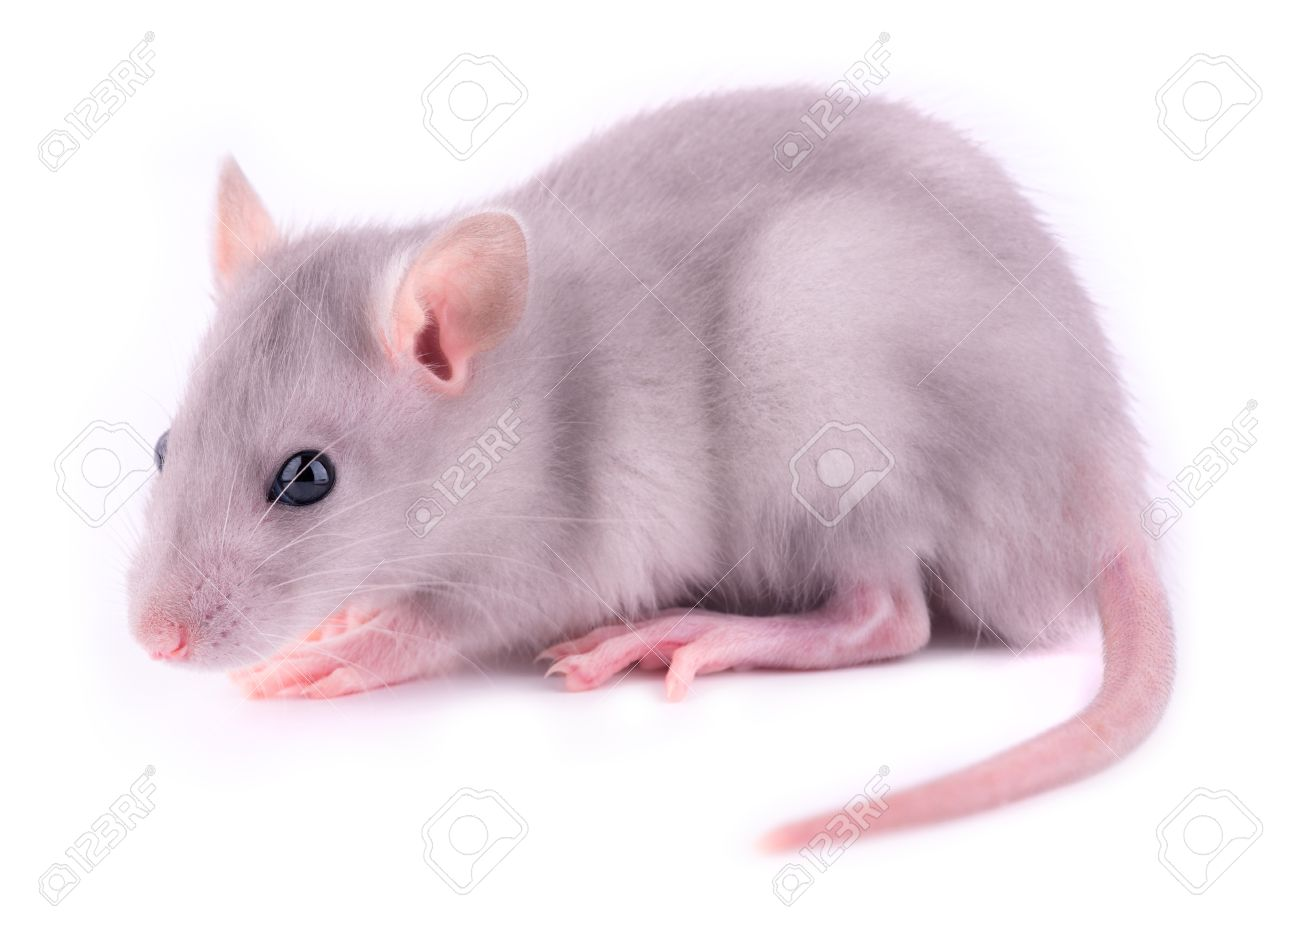 Baby rat (1 month old) Stock Photo - 13814737